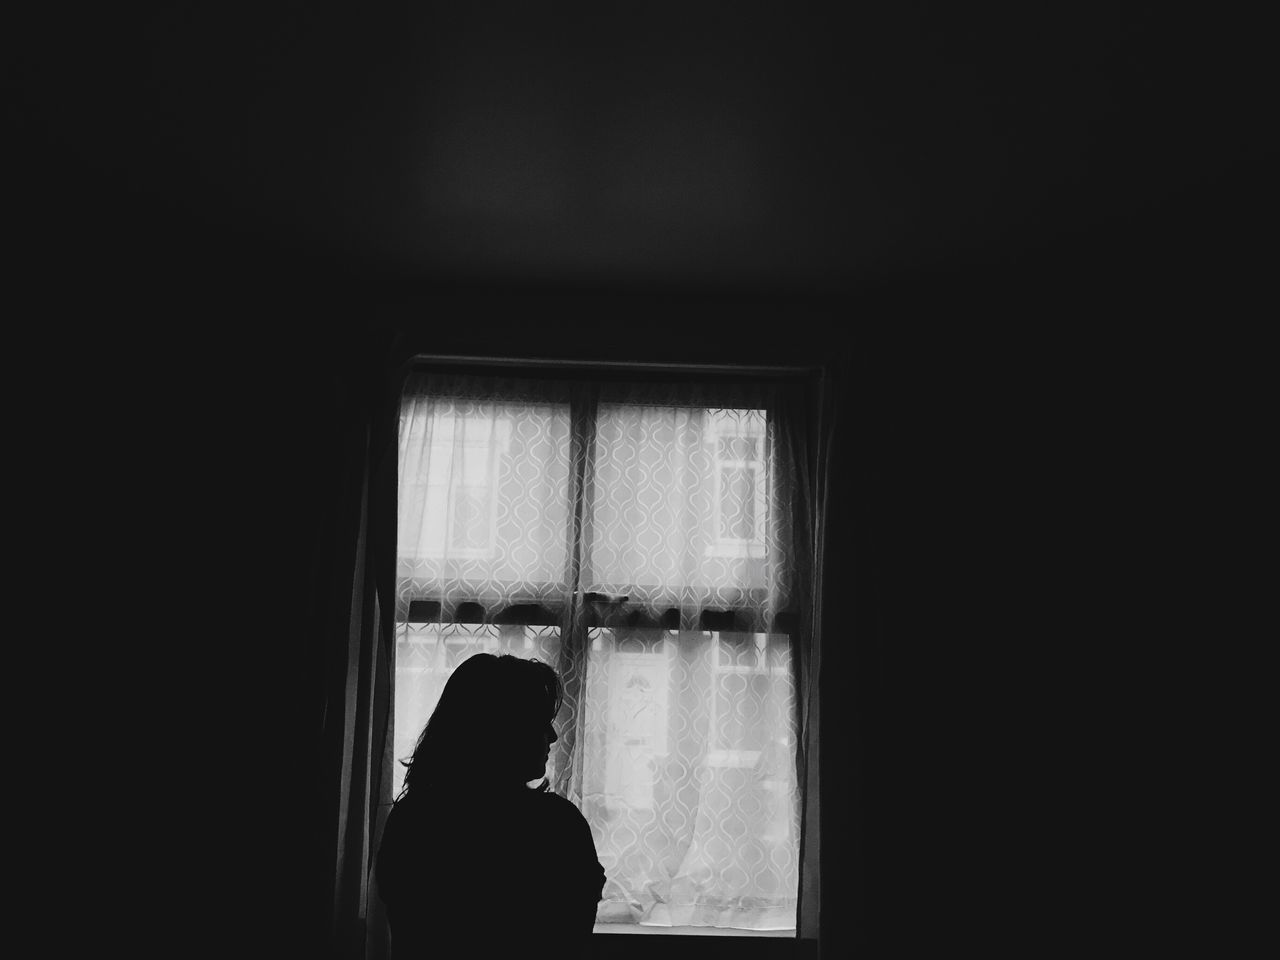 IPhoneography Iphone7 Silhouette Window One Person Curtain Indoors  Home Interior Real People Silhouette Day Adult People (null)Home Waiting